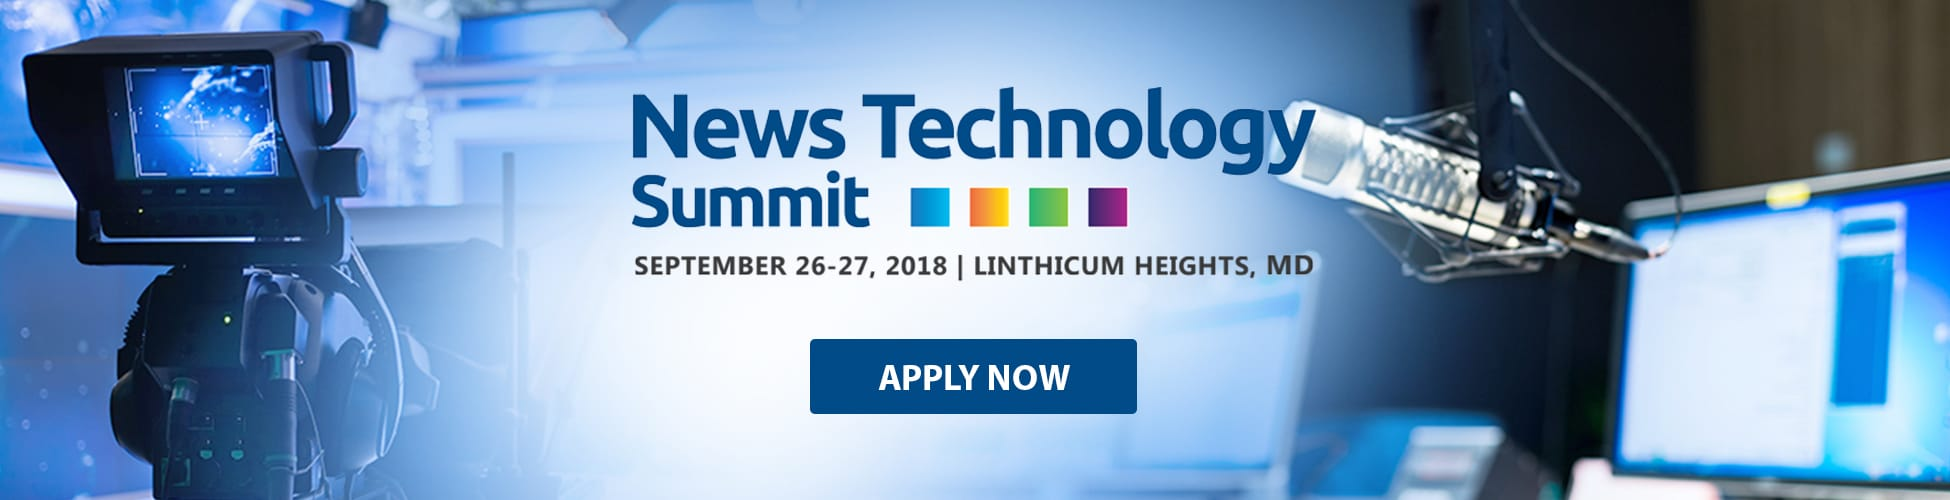 News Technology Summit